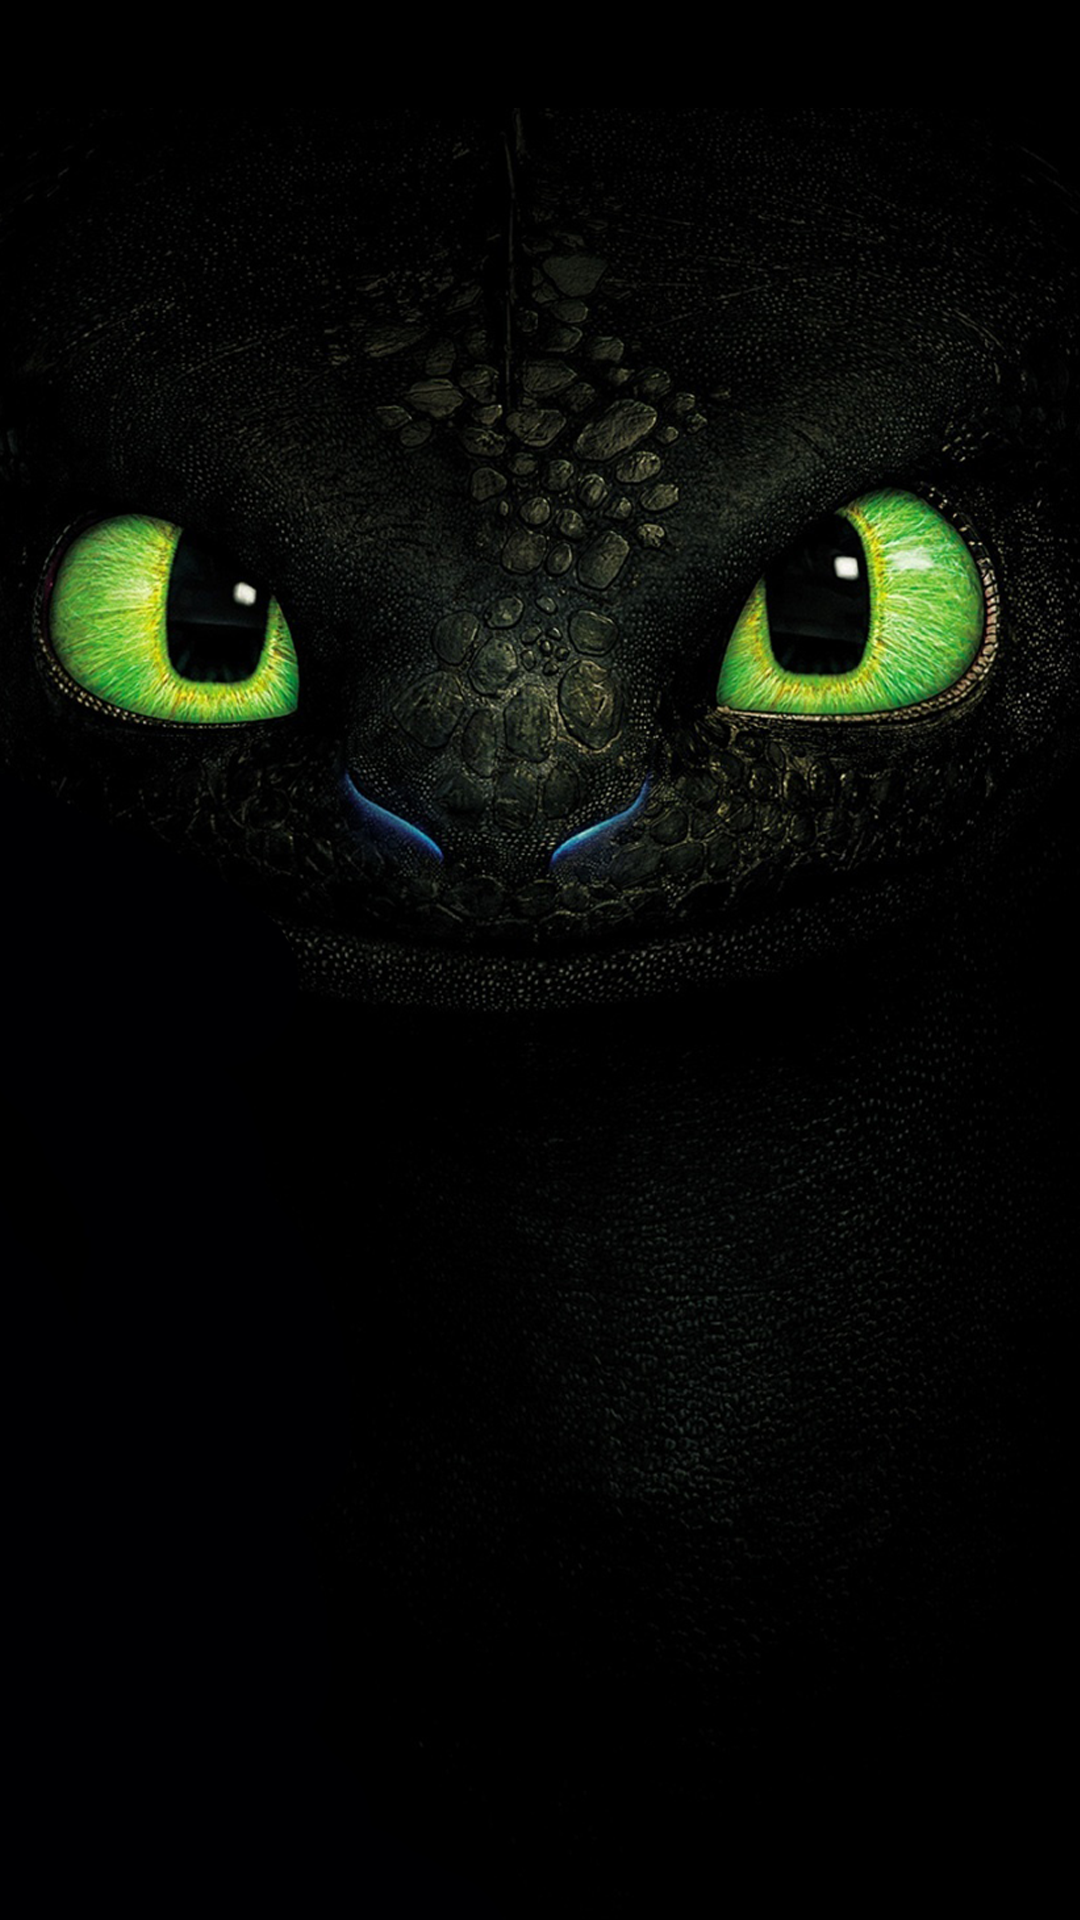 Ultra hd toothless dragon wallpaper for your mobile phone - Free dragonfly wallpaper for android ...